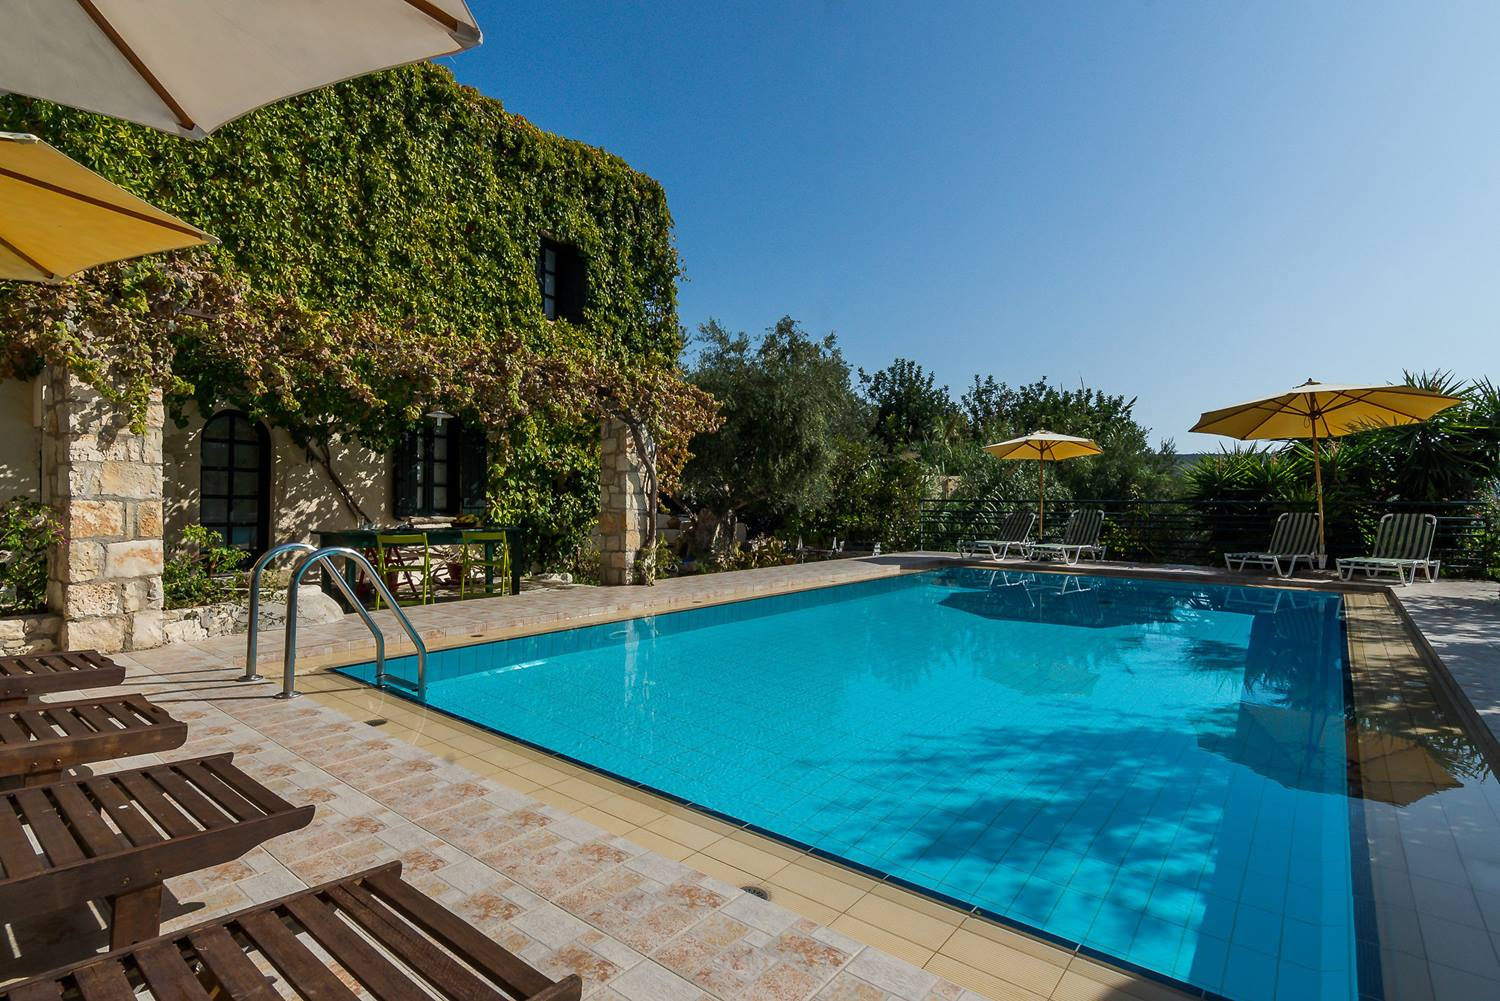 Chania Dorf Traum 1 Haus Mit Pool Holiday Rentals In Crete And Santorini